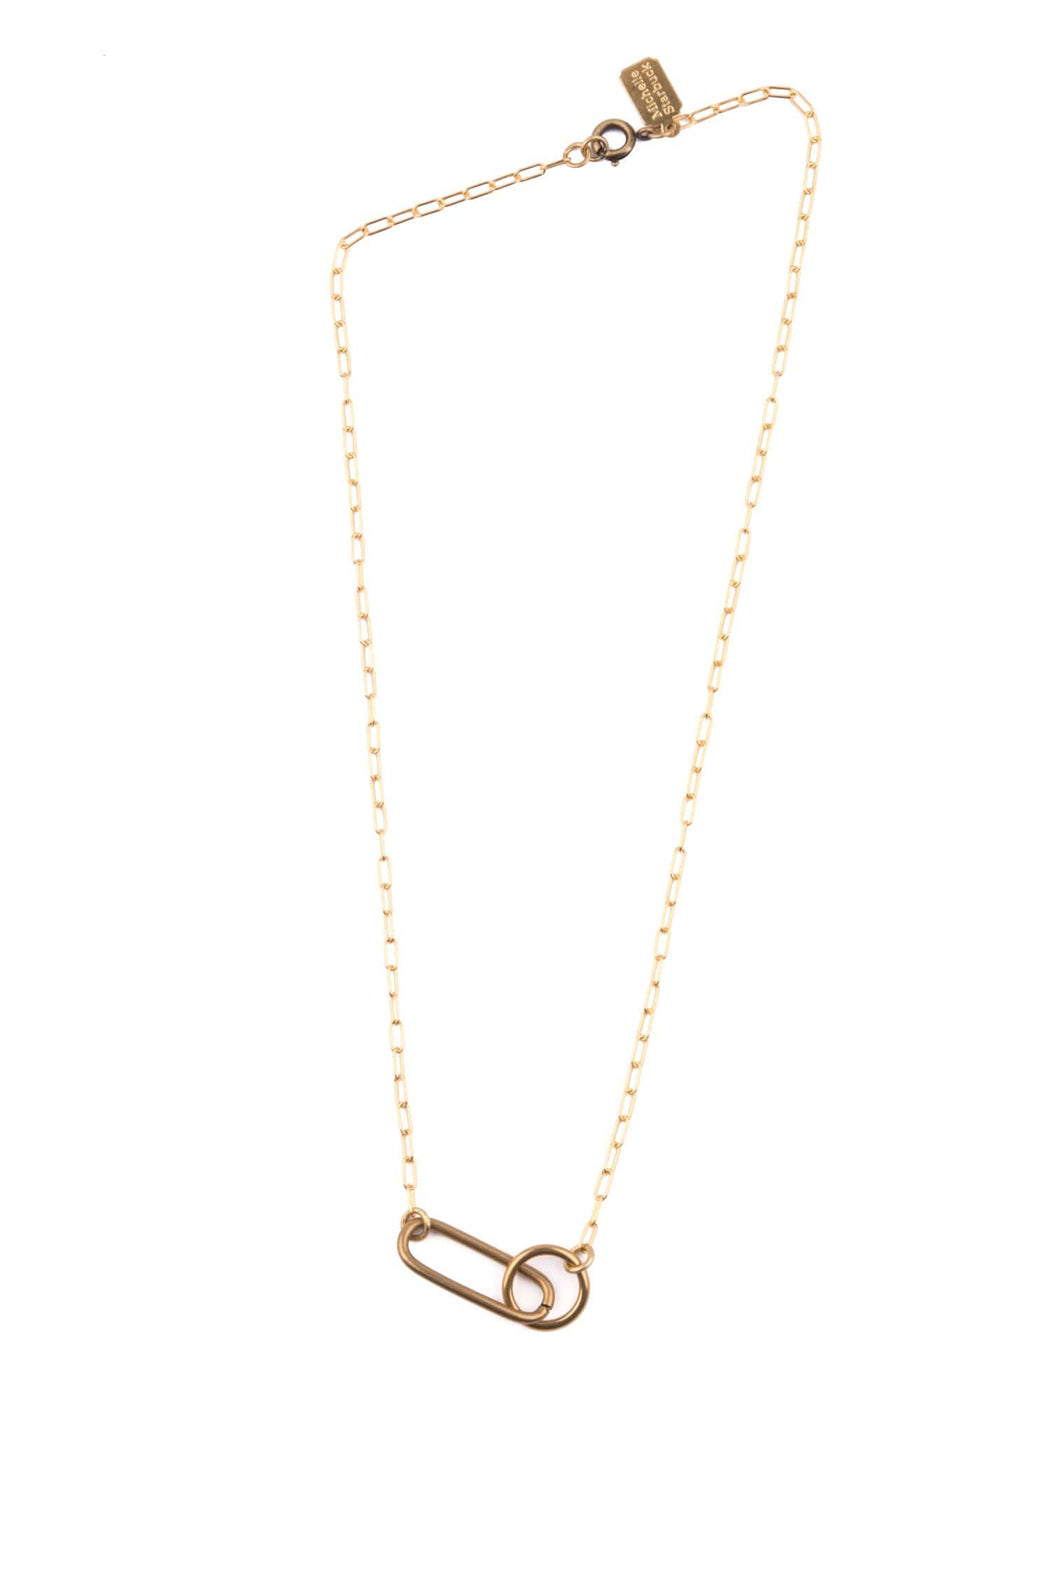 Linked Loop Necklace - Michelle Starbuck Designs